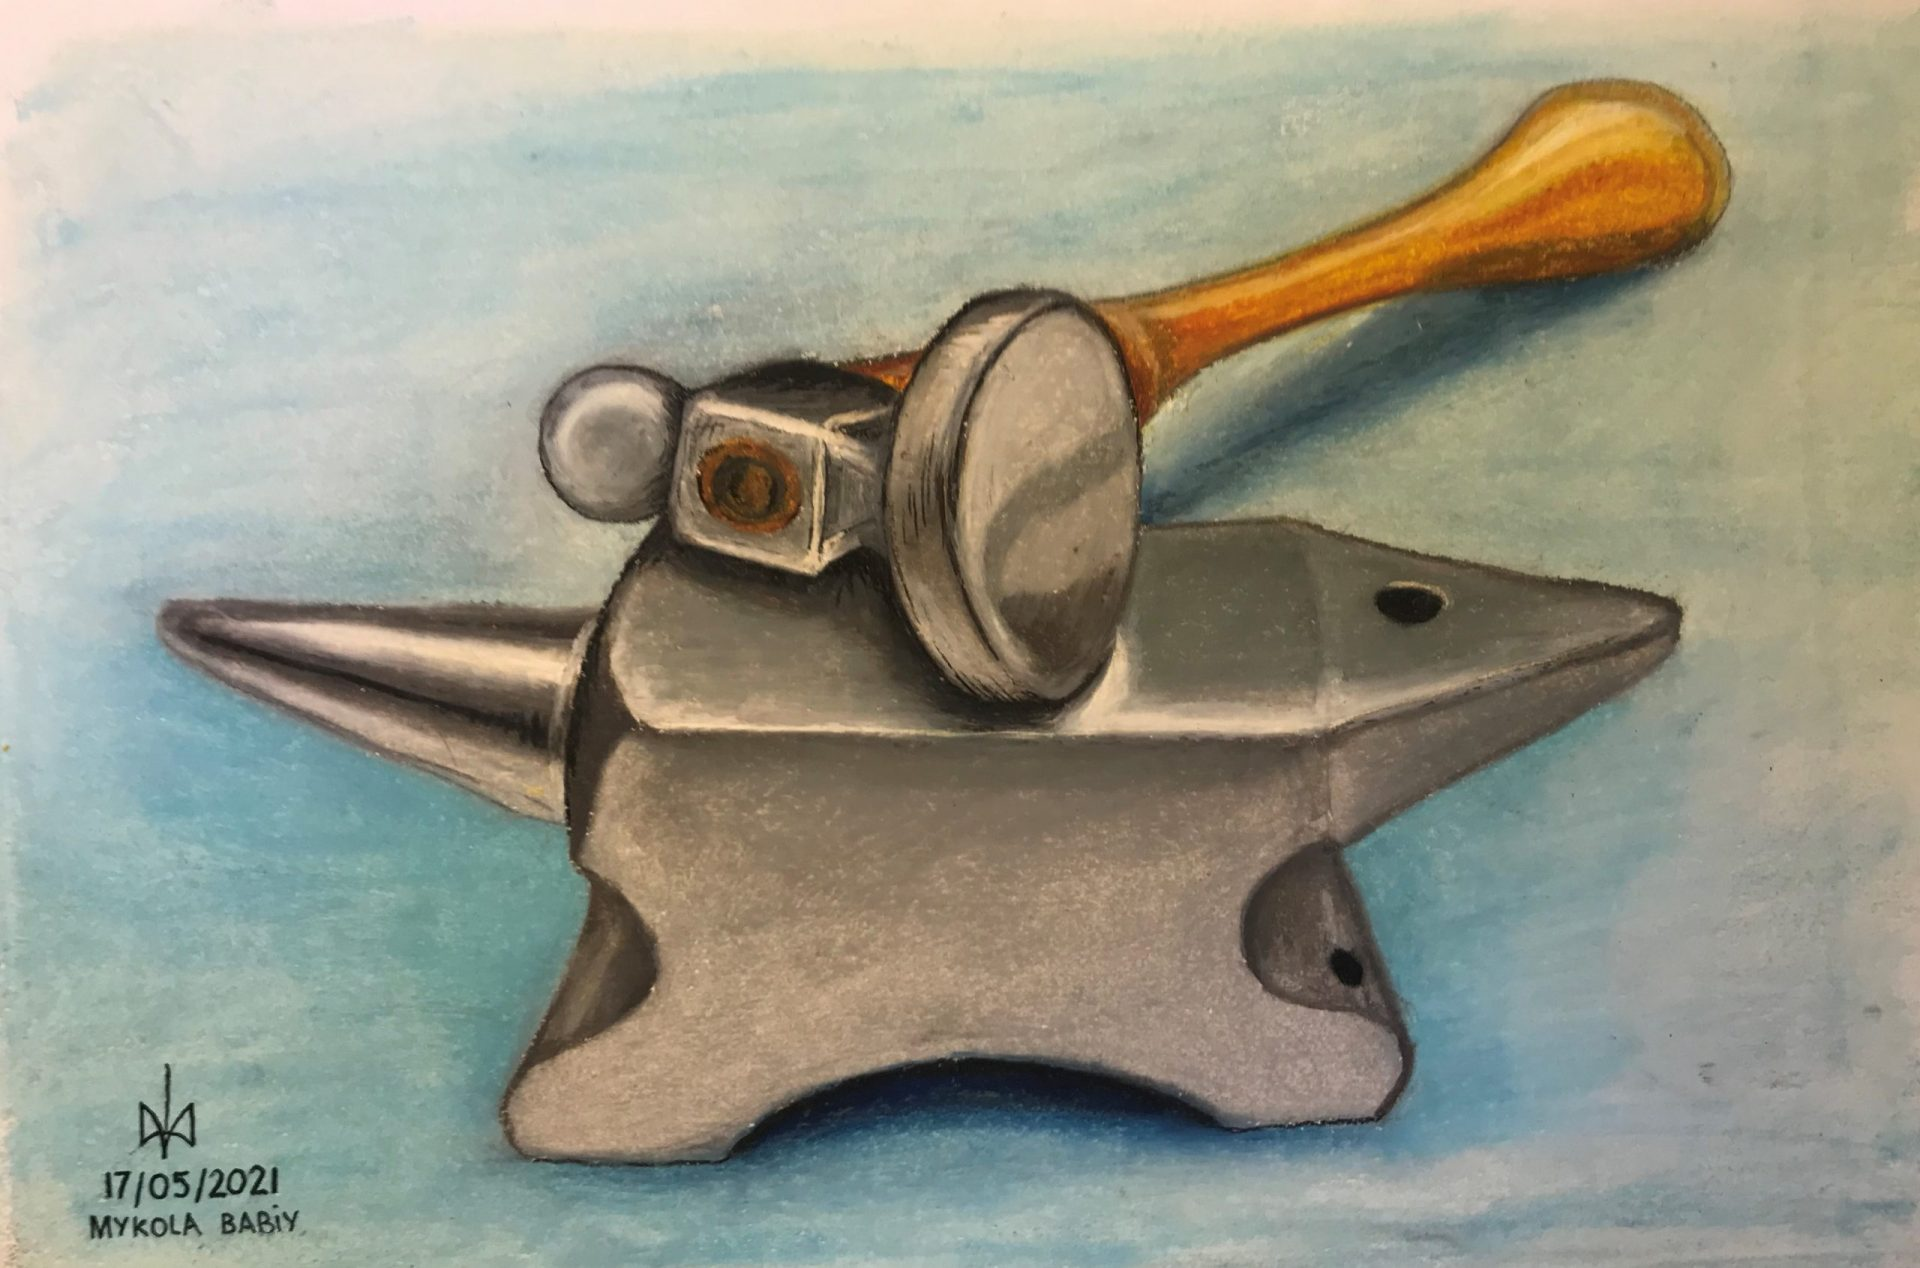 Chasing & Repousse tools. Oil pastels.